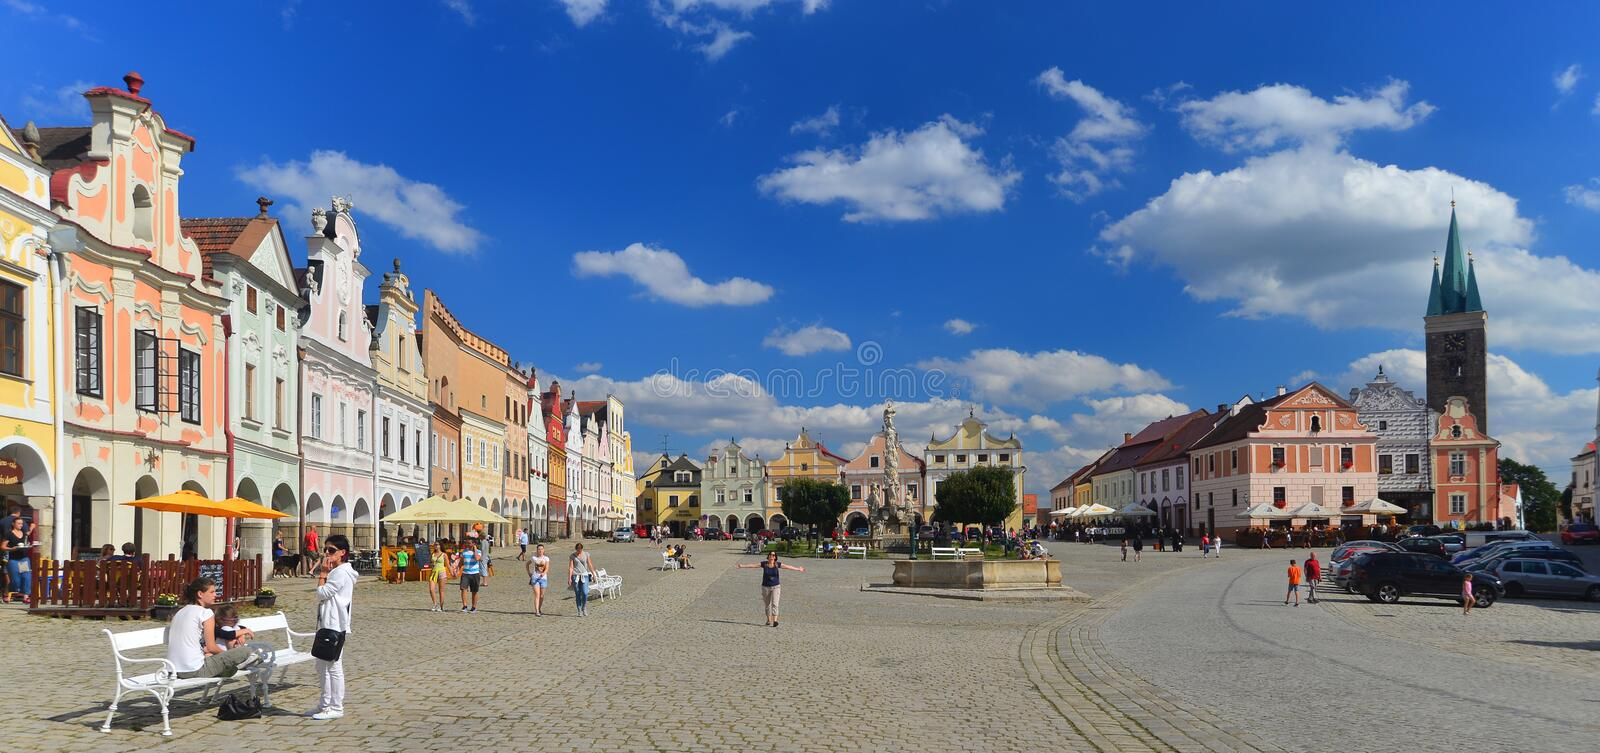 Renaissance market square in Telc, Czech republic stock photos